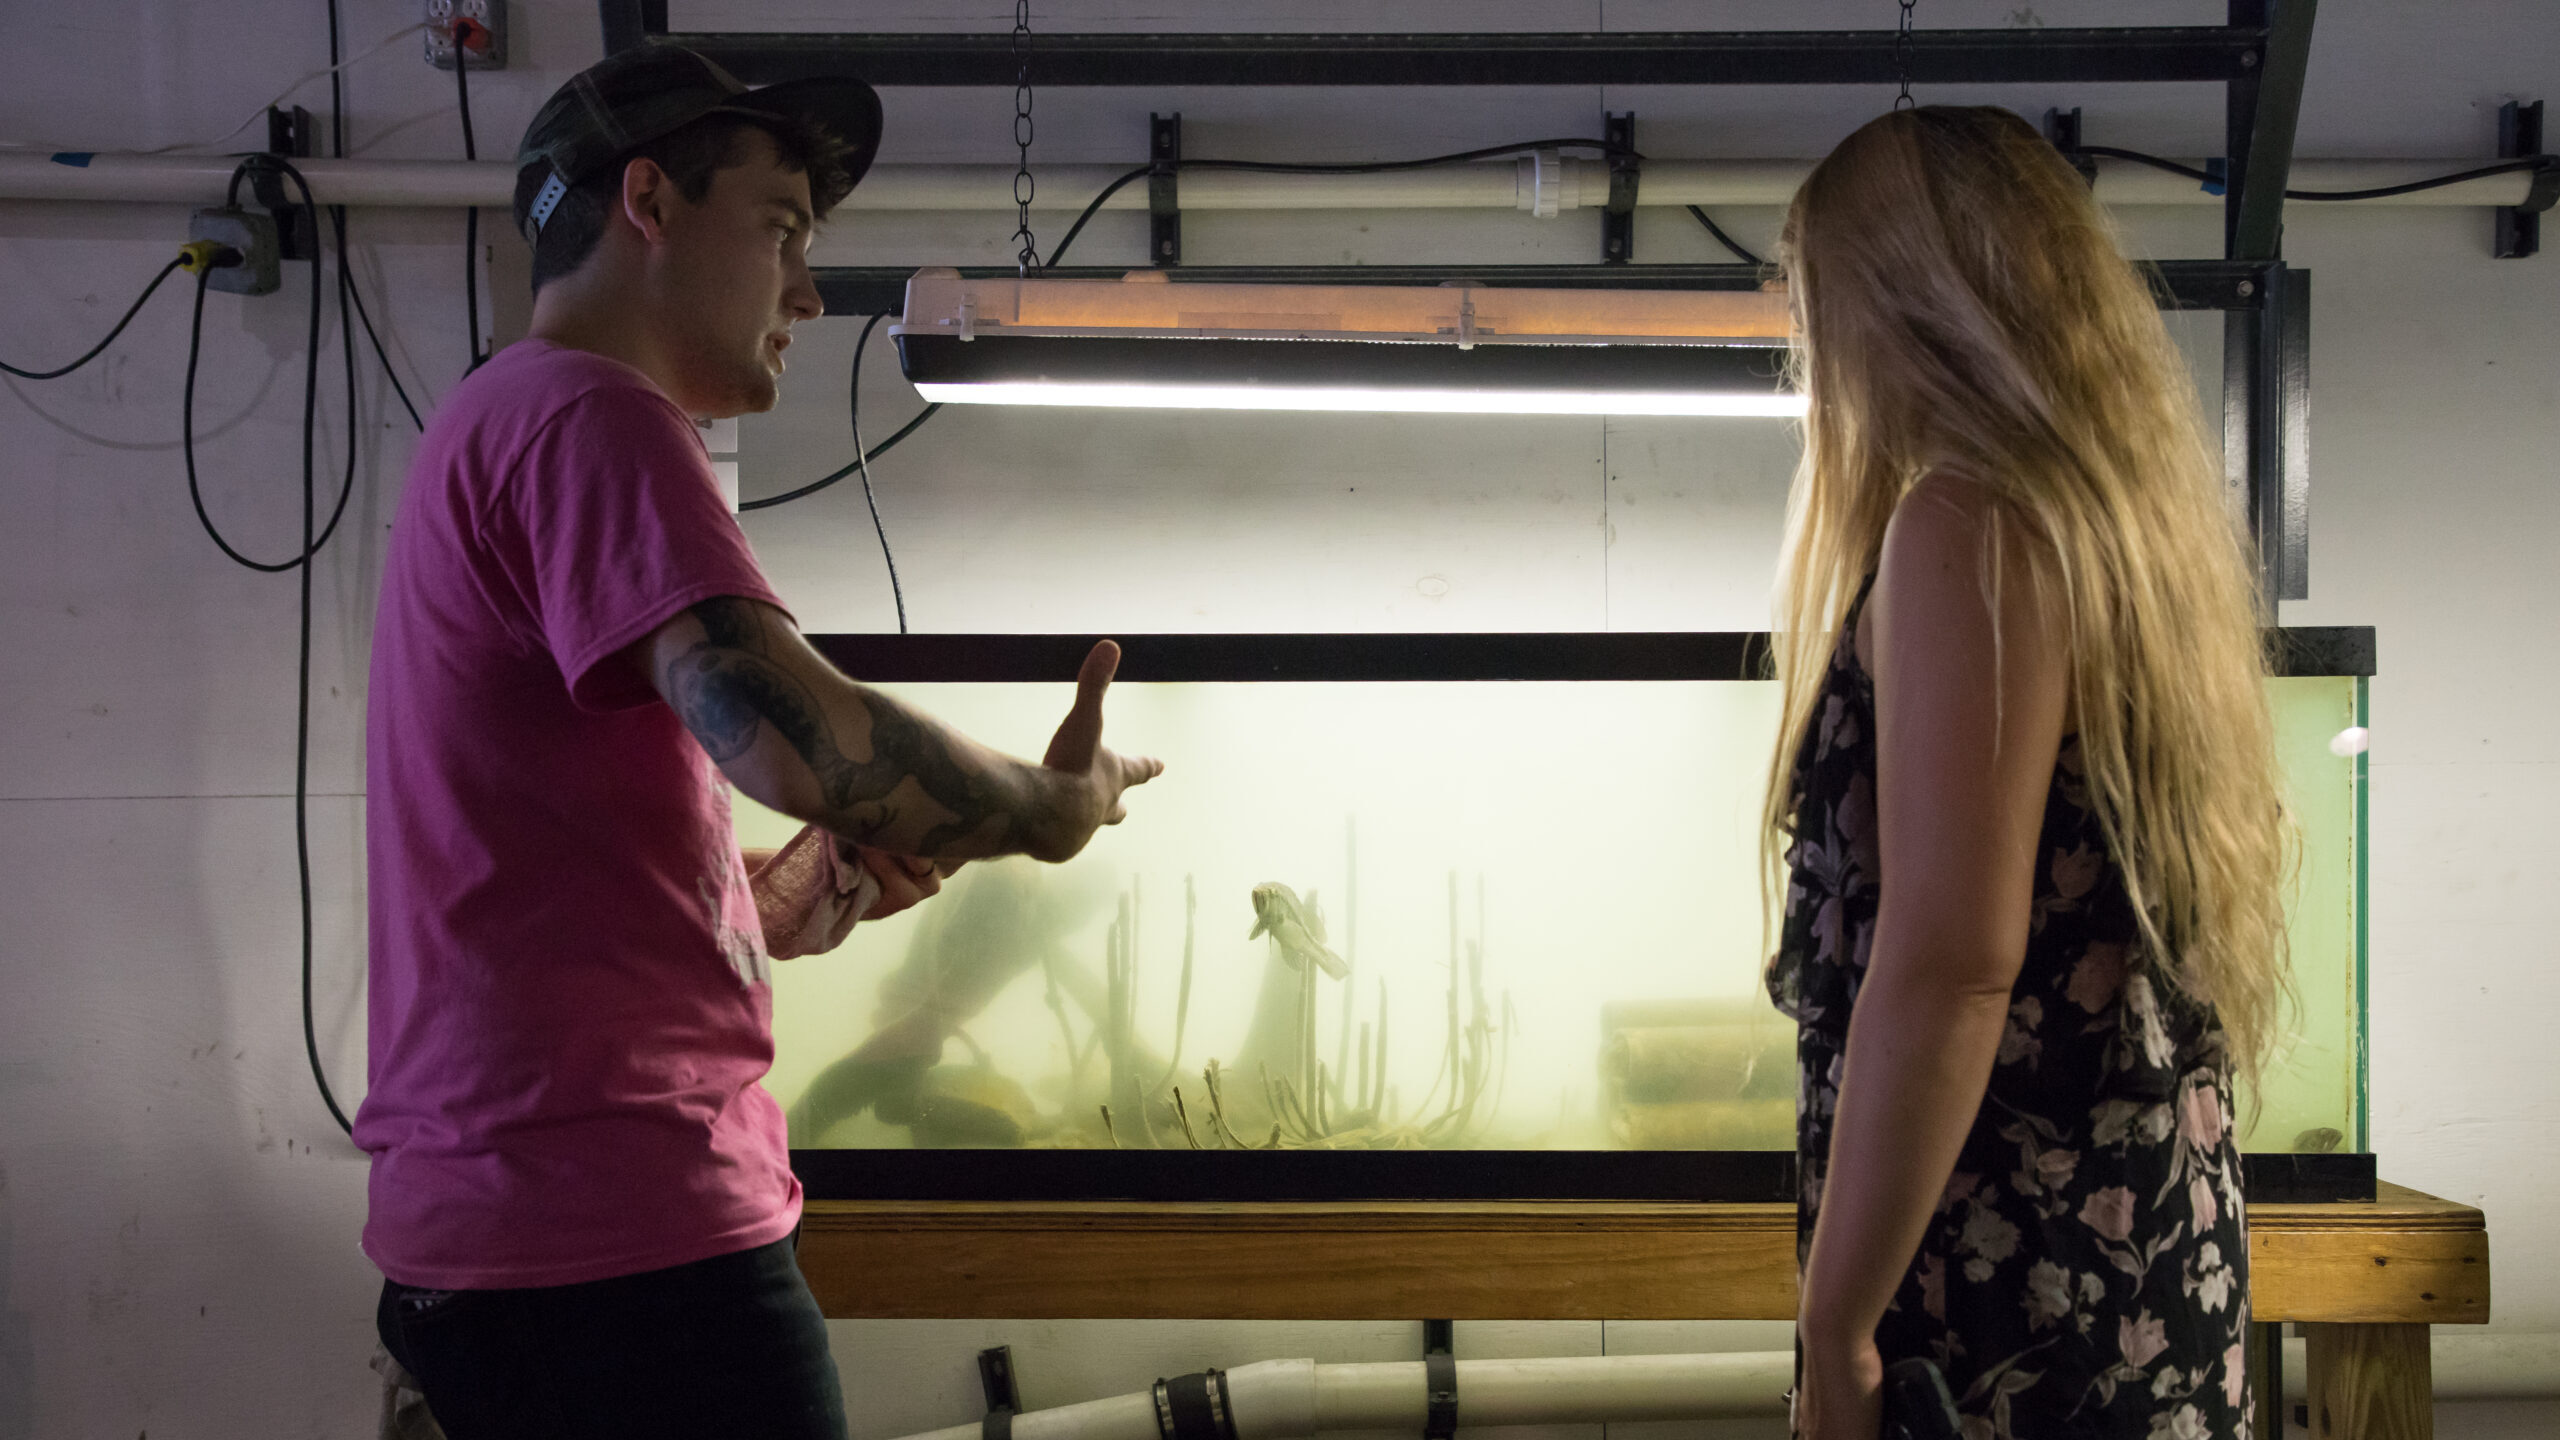 A River Project wetlab guide discusses what's in the fish tanks